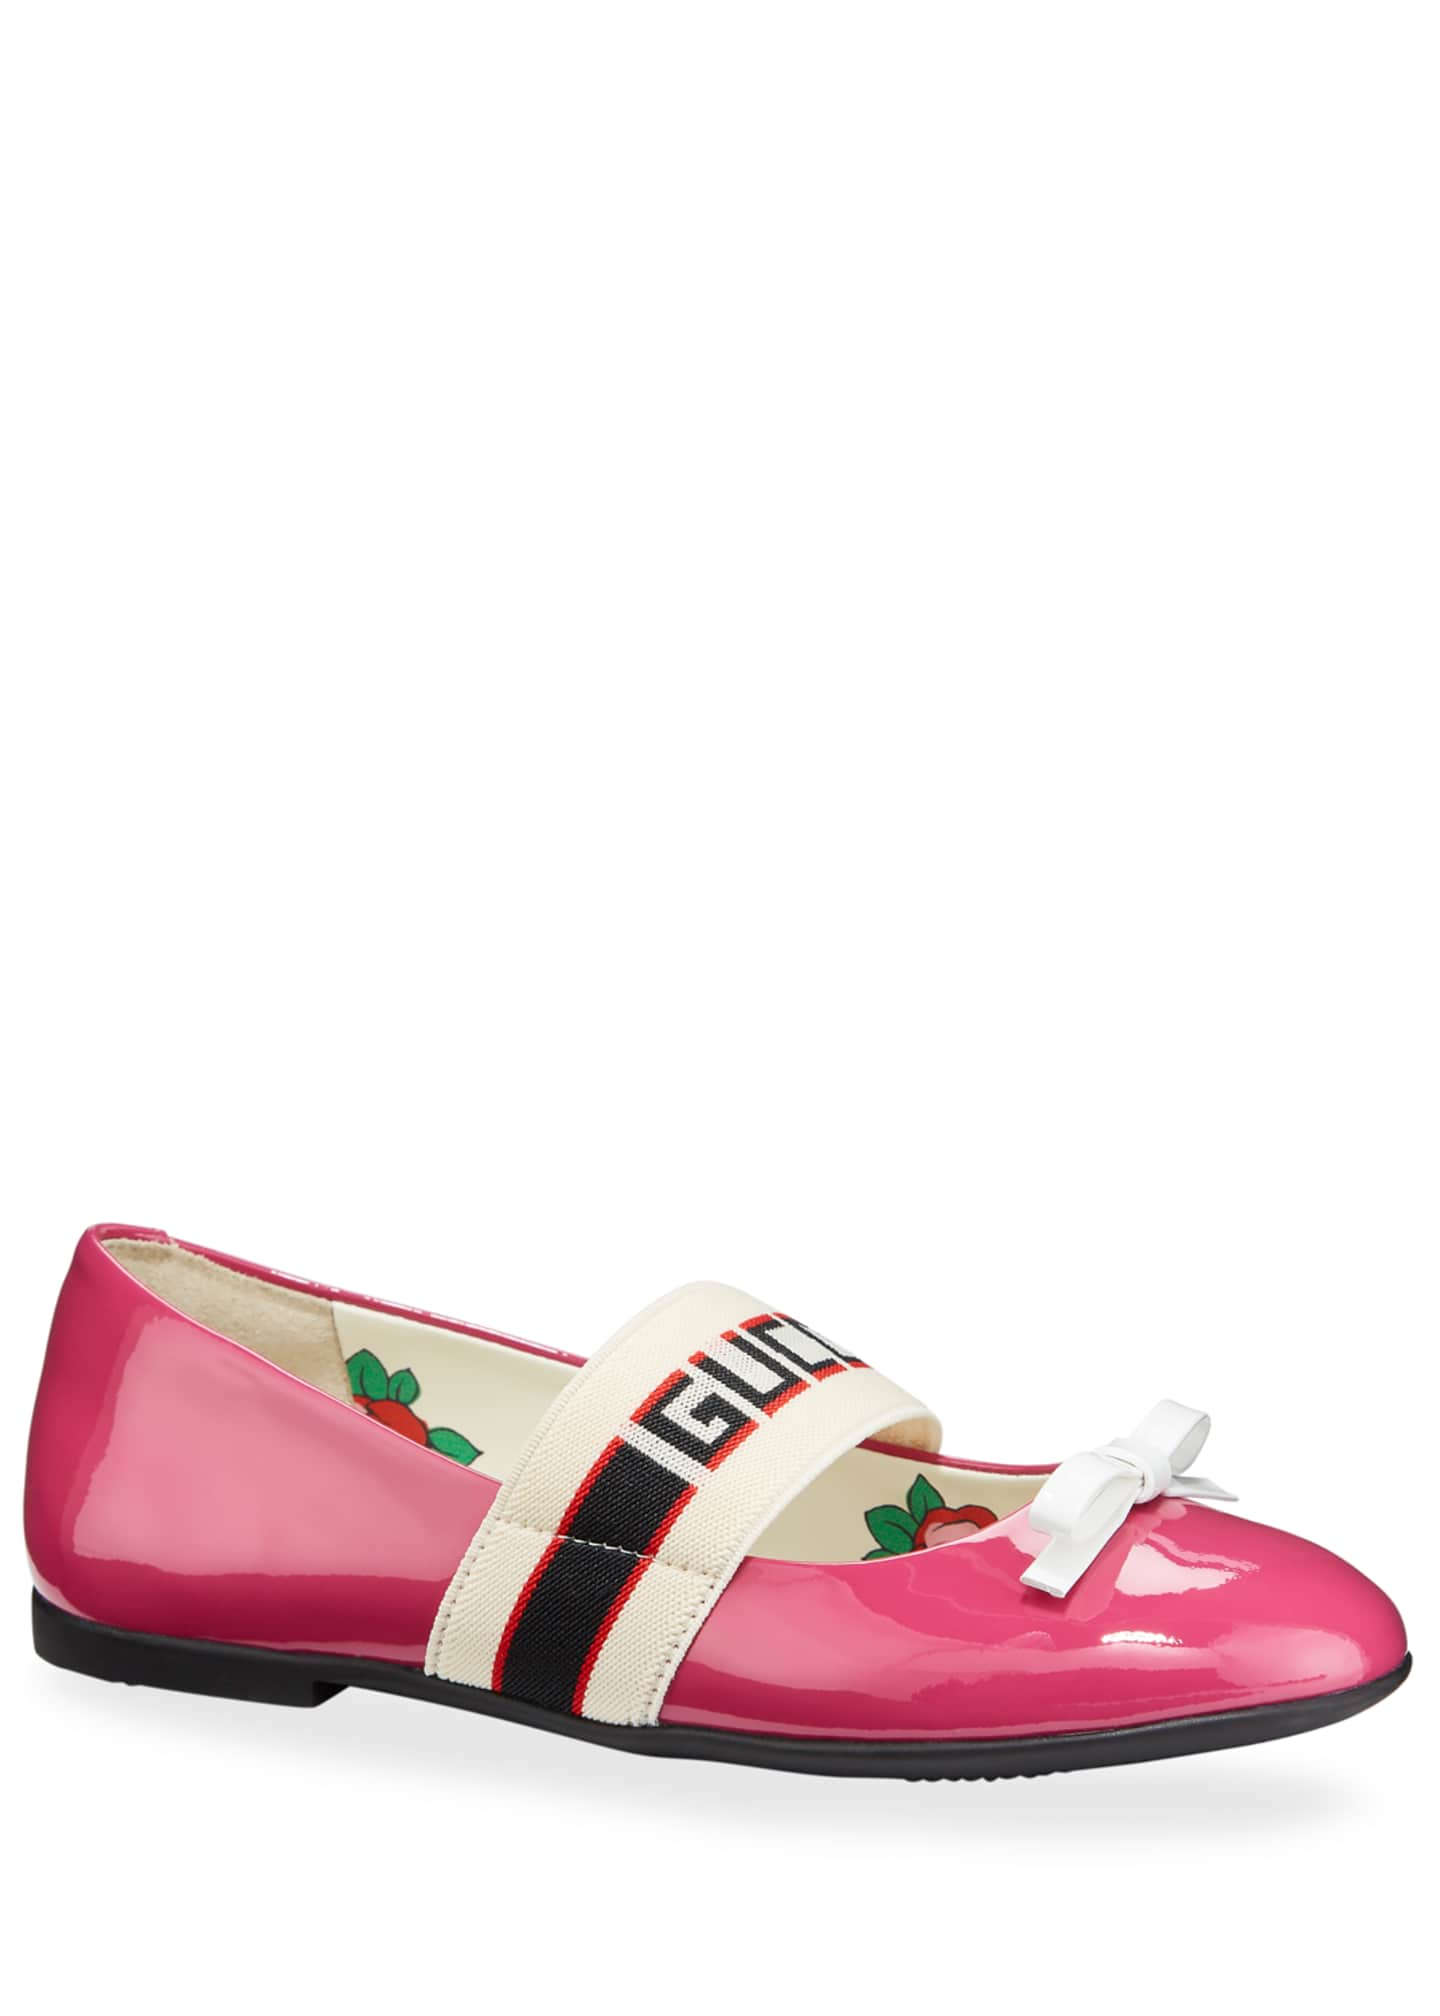 Gucci Patent Leather Gucci Band Ballet Flats, Kids